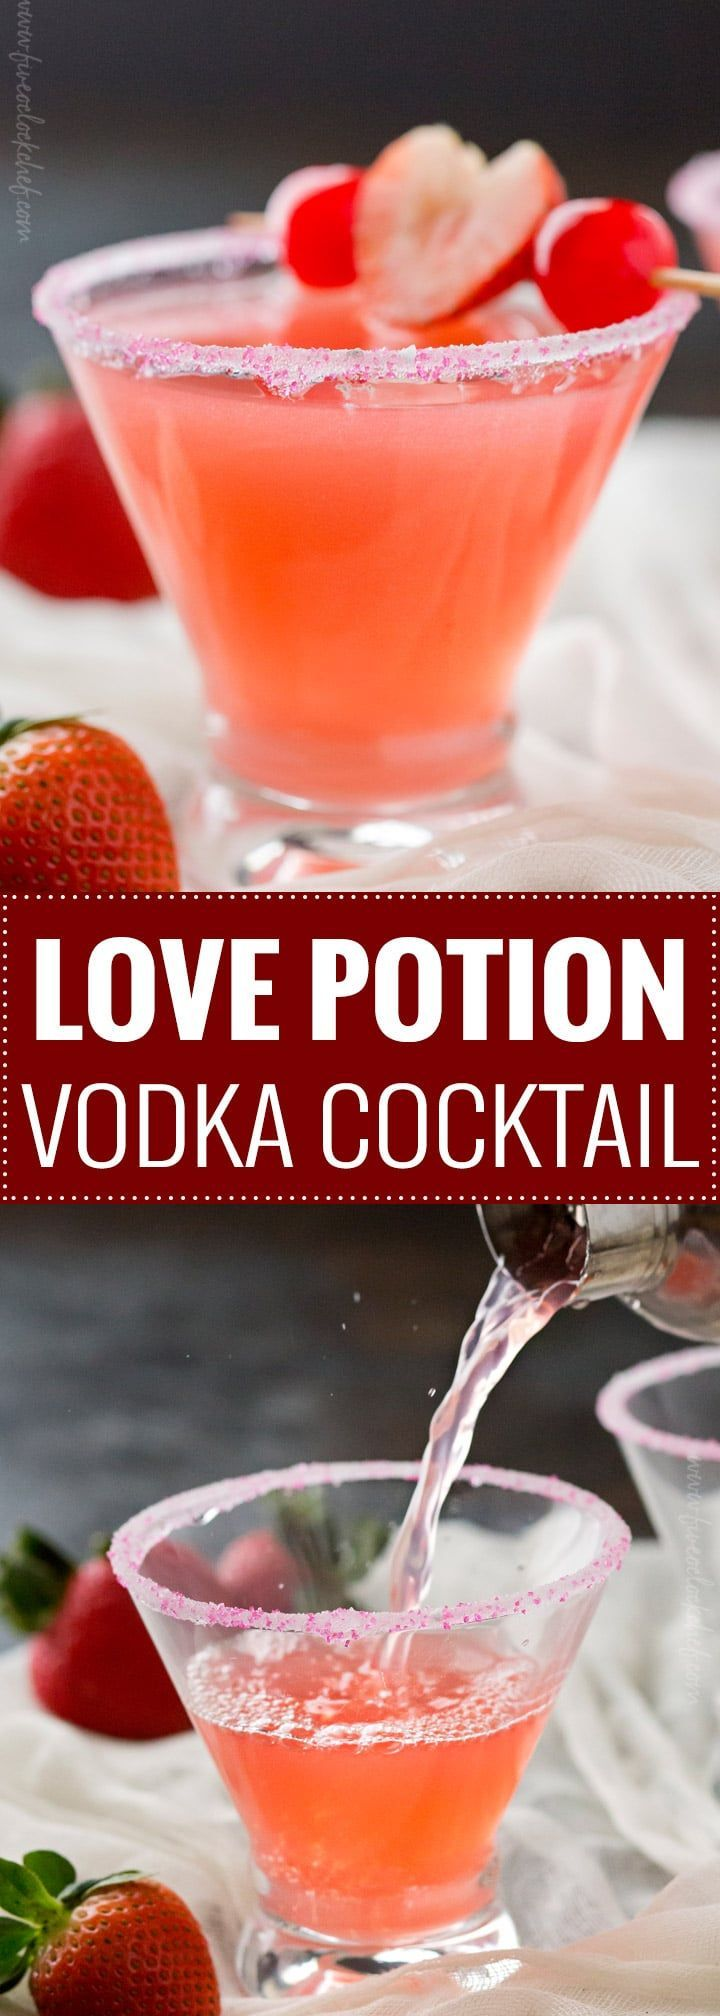 Love Potion Vodka Cocktail | The best drink for Valentine's Day, this love potion cocktail is made with just 3 ingredients, vodka, peach schnapps, and grapefruit juice. A must try.